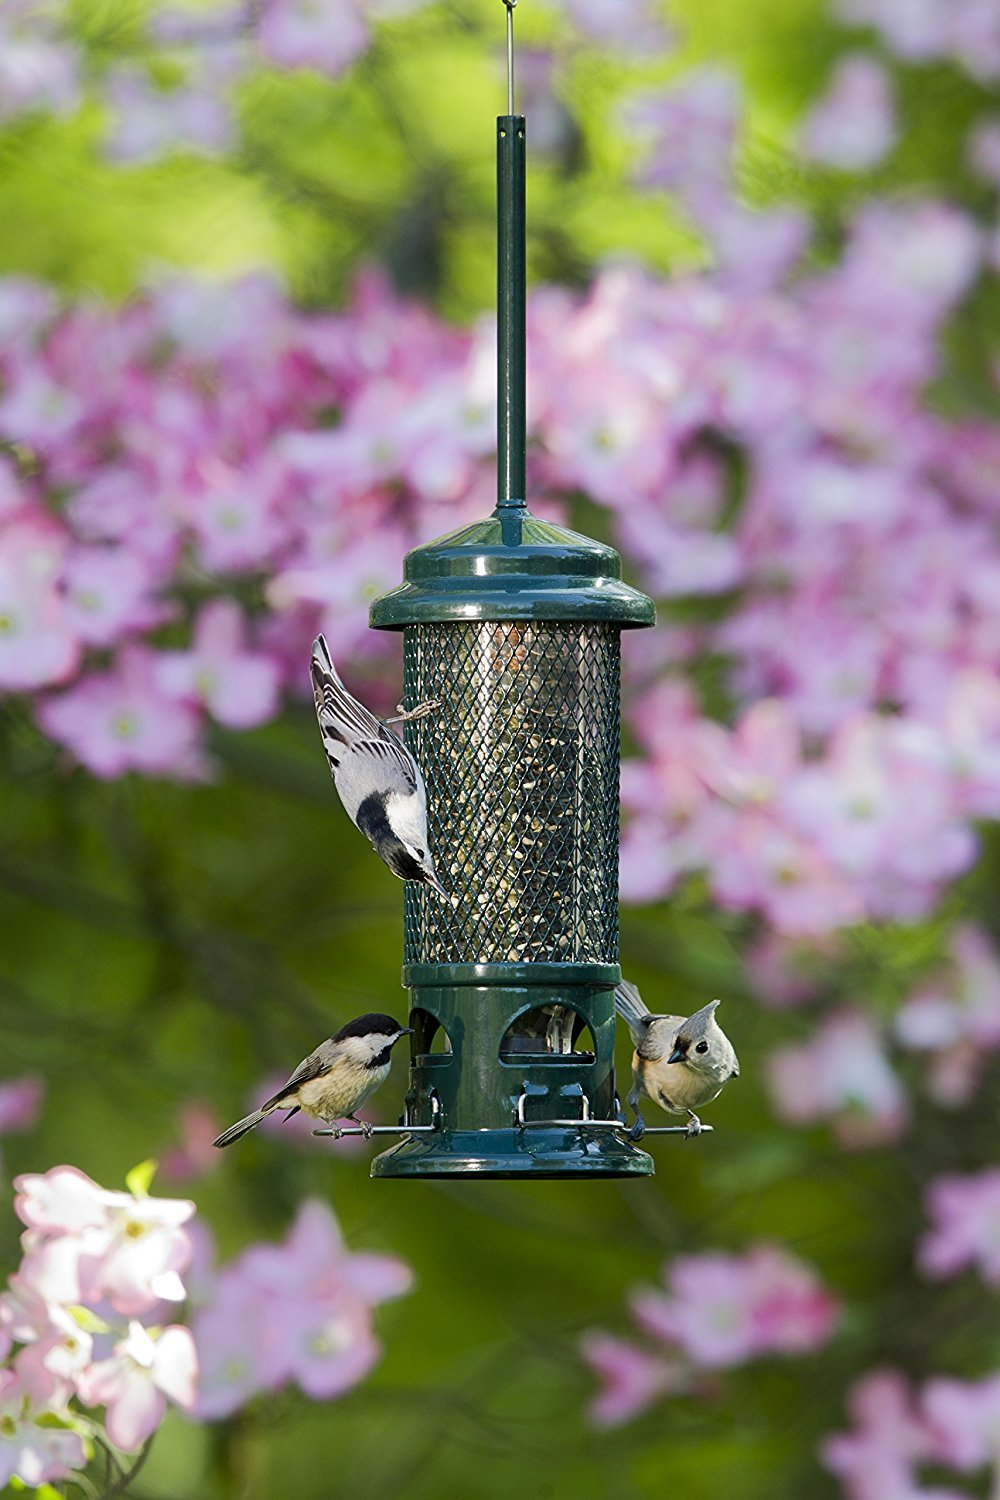 Brome 1057 Squirrel Buster Wild Bird Feeder with 4 Metal Perches